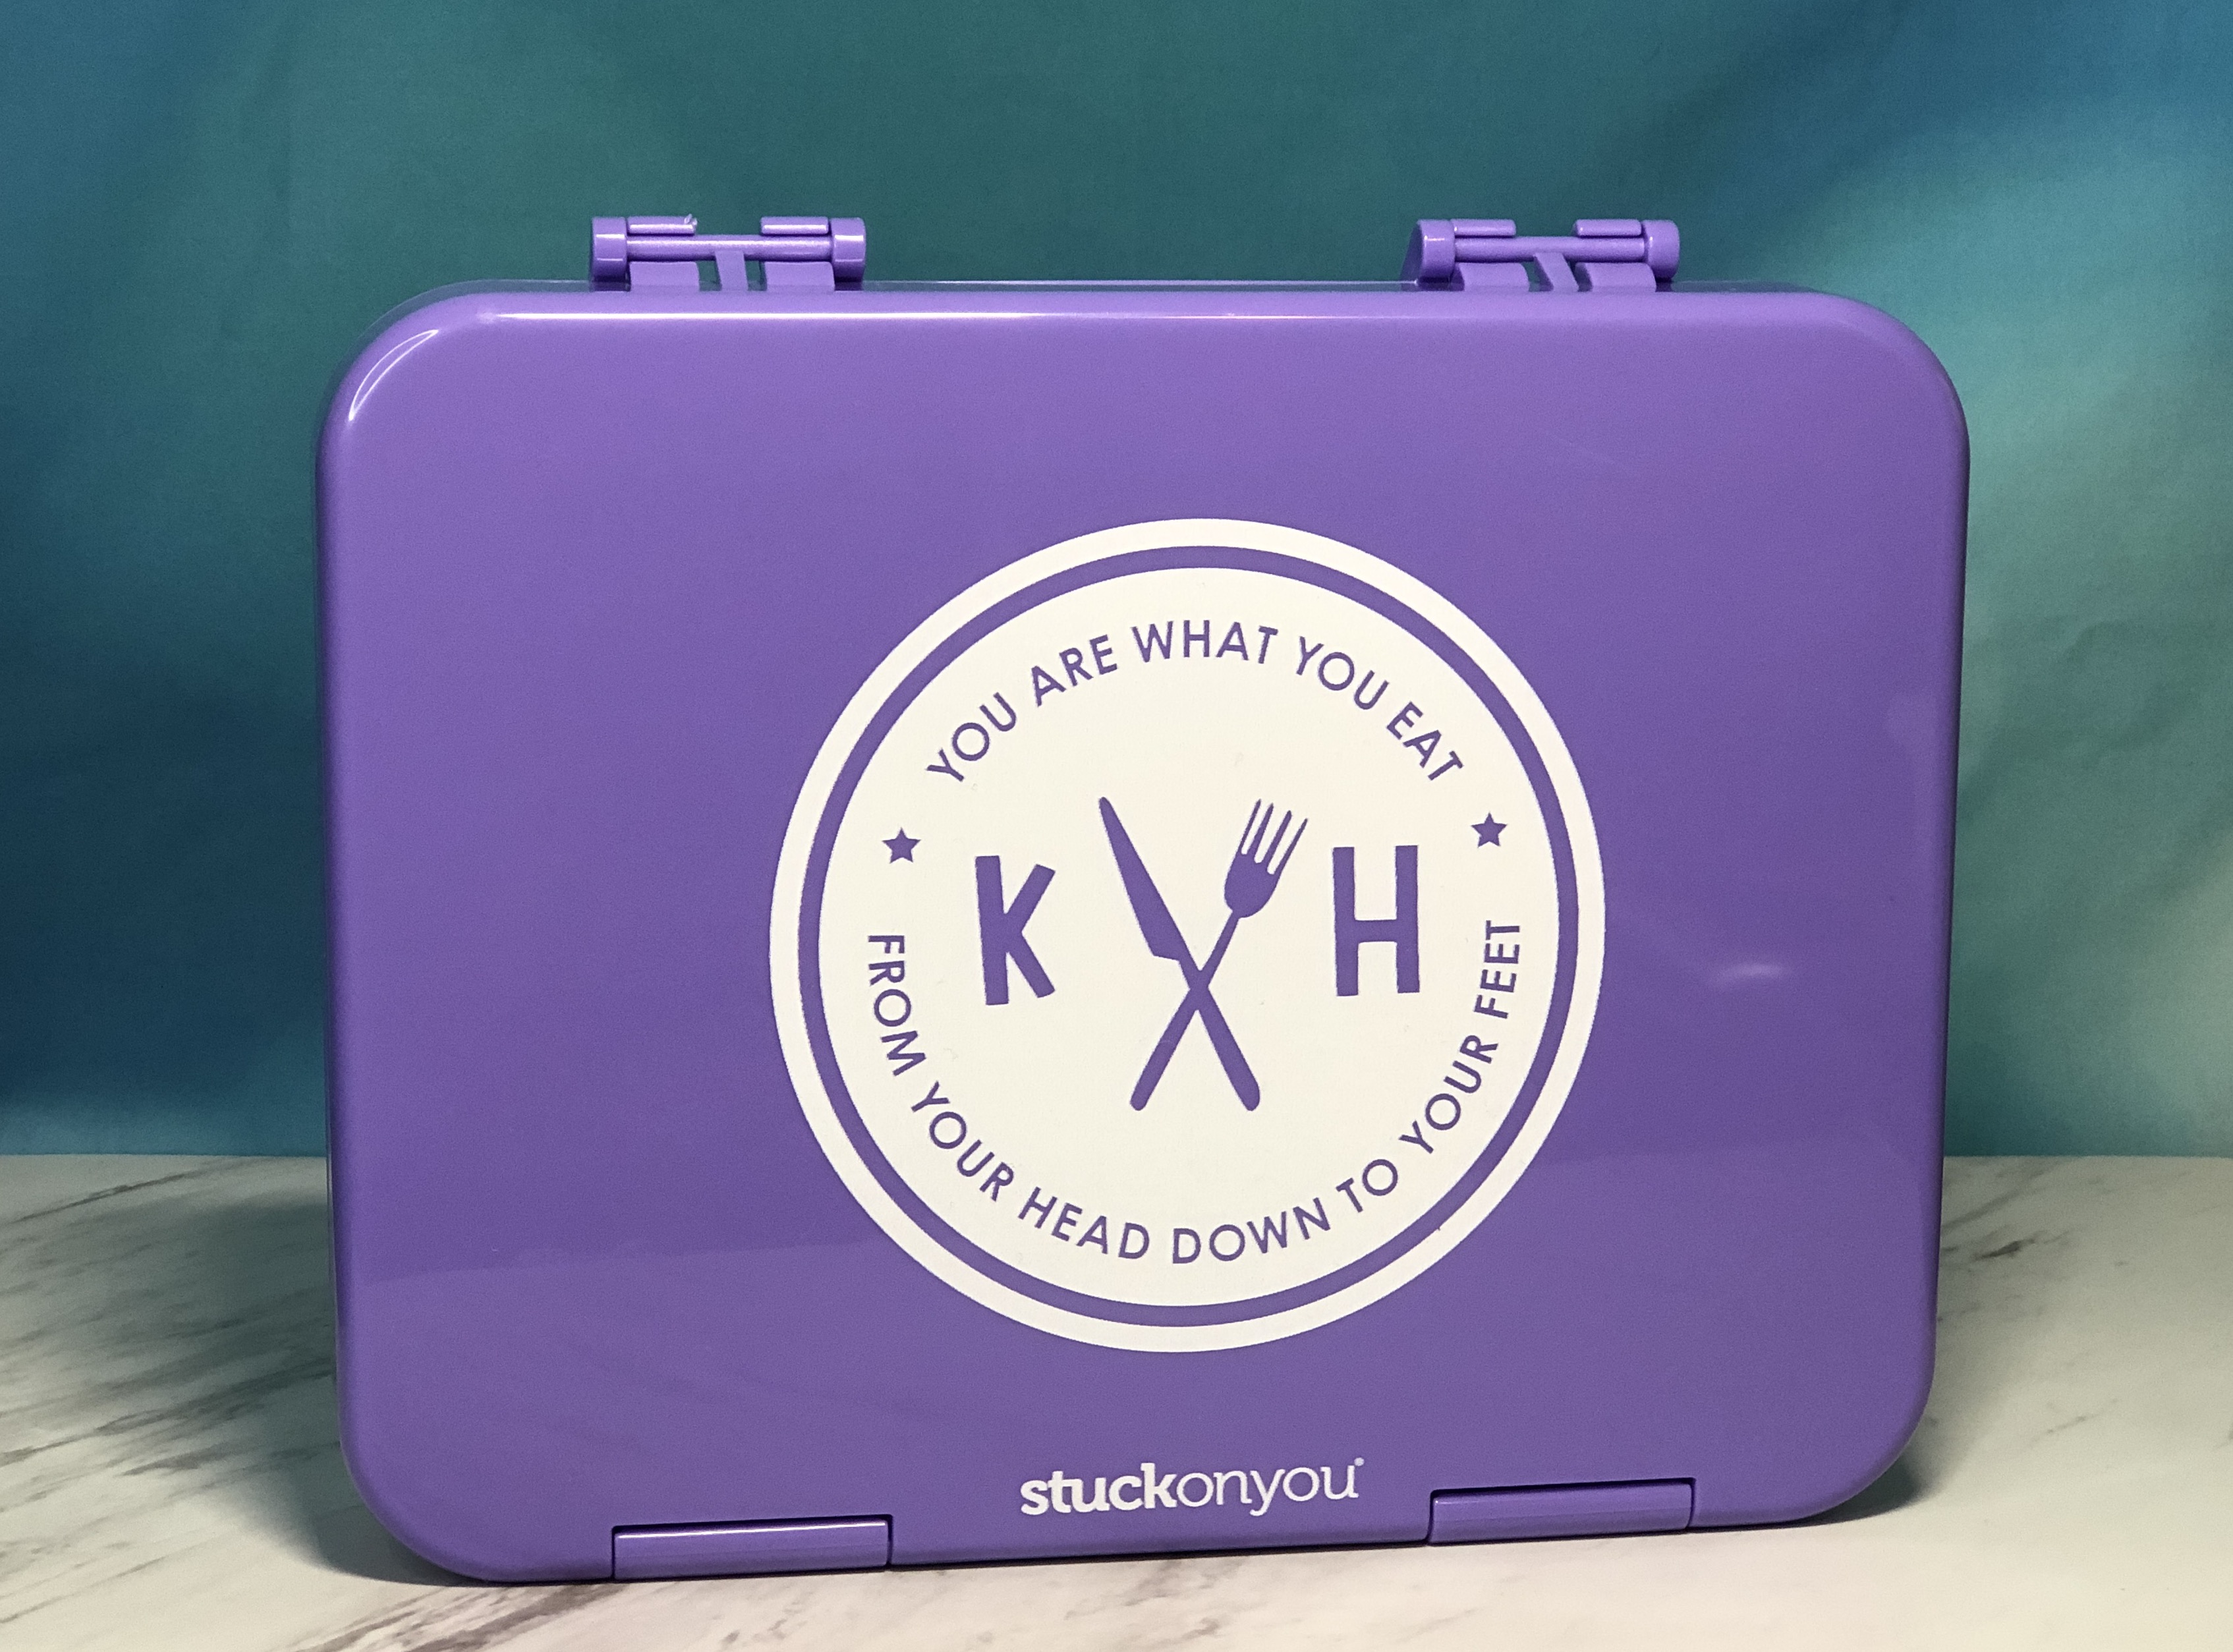 Stuckonyou Lunch container